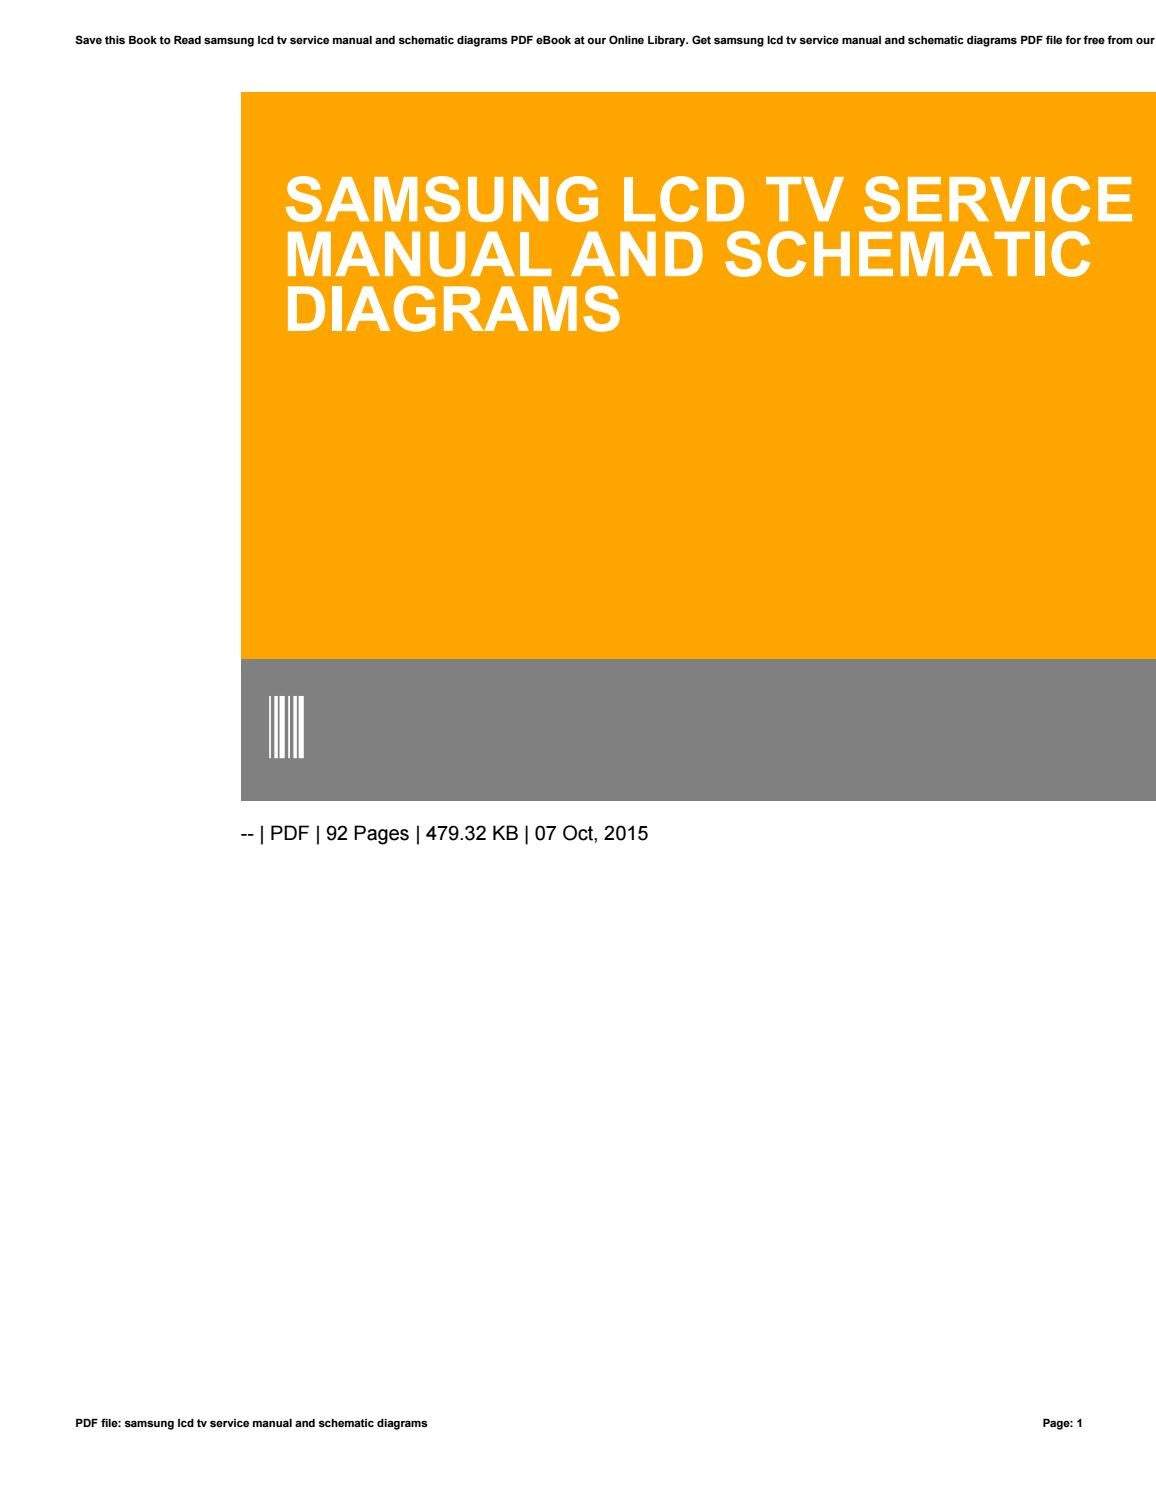 hight resolution of samsung lcd tv service manual and schematic diagrams by freealtgen17 issuu